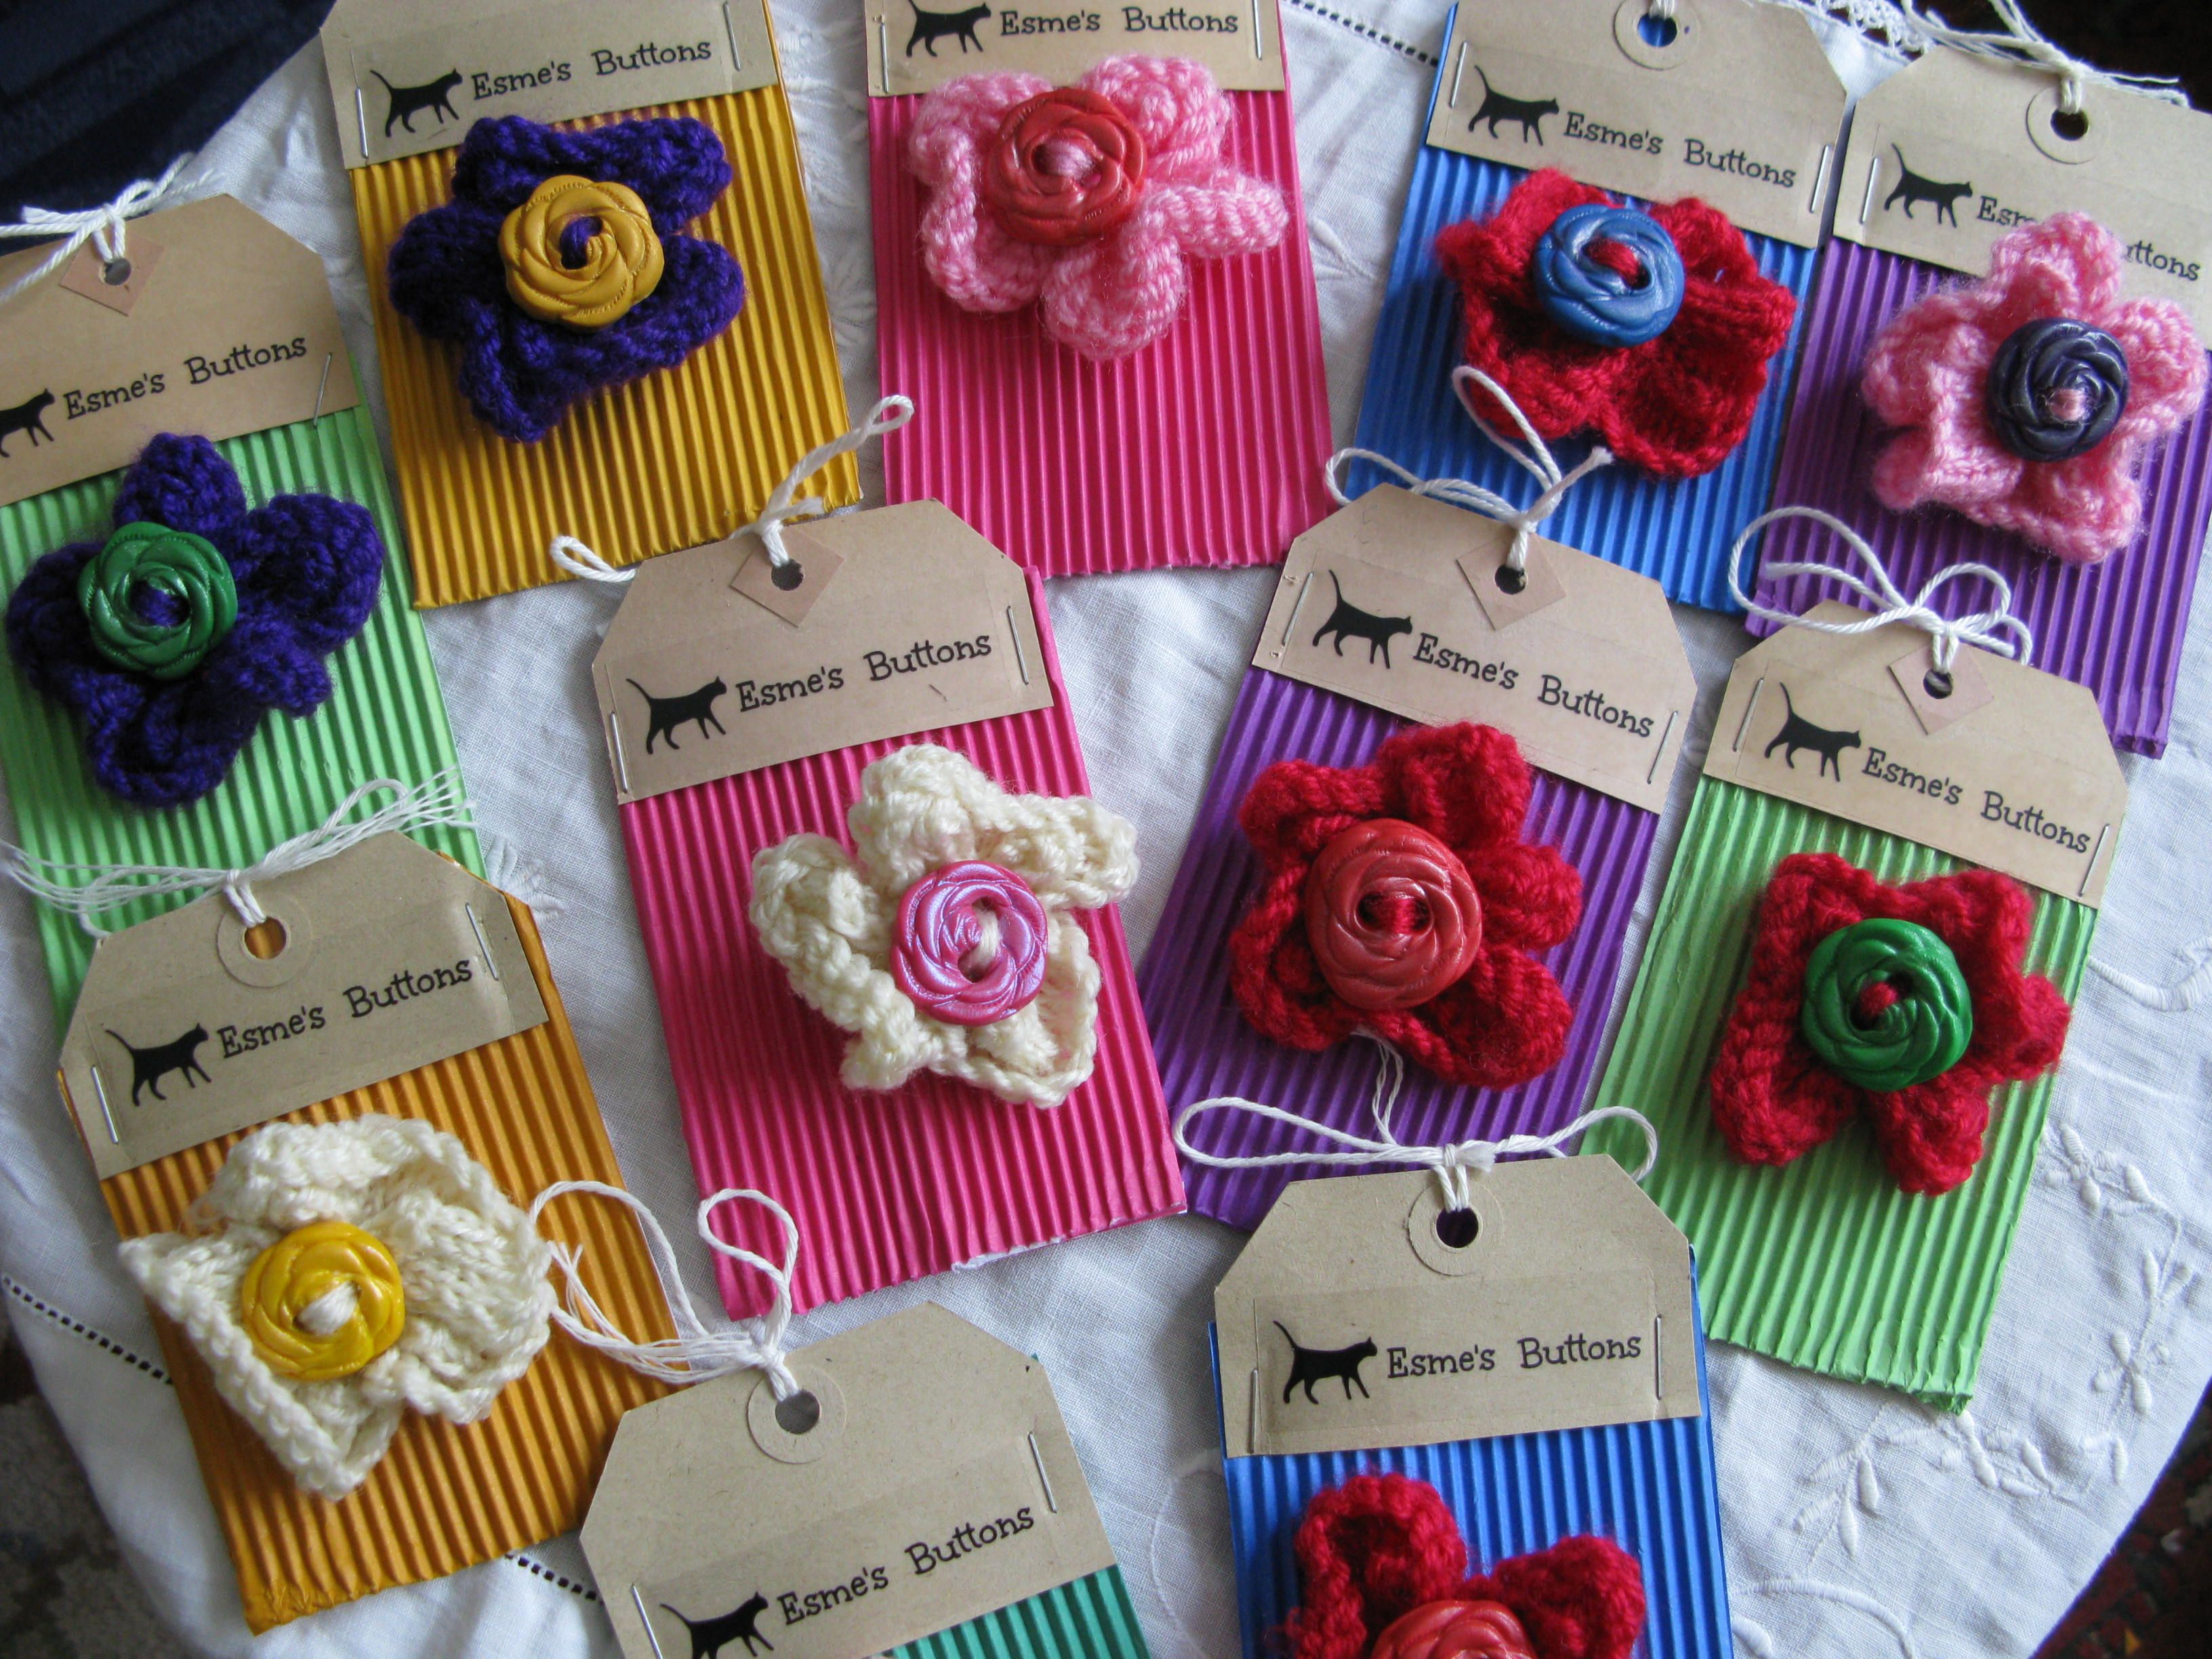 Roses Knitting Centre : Knitted flowers with our own rose buttons as centres £